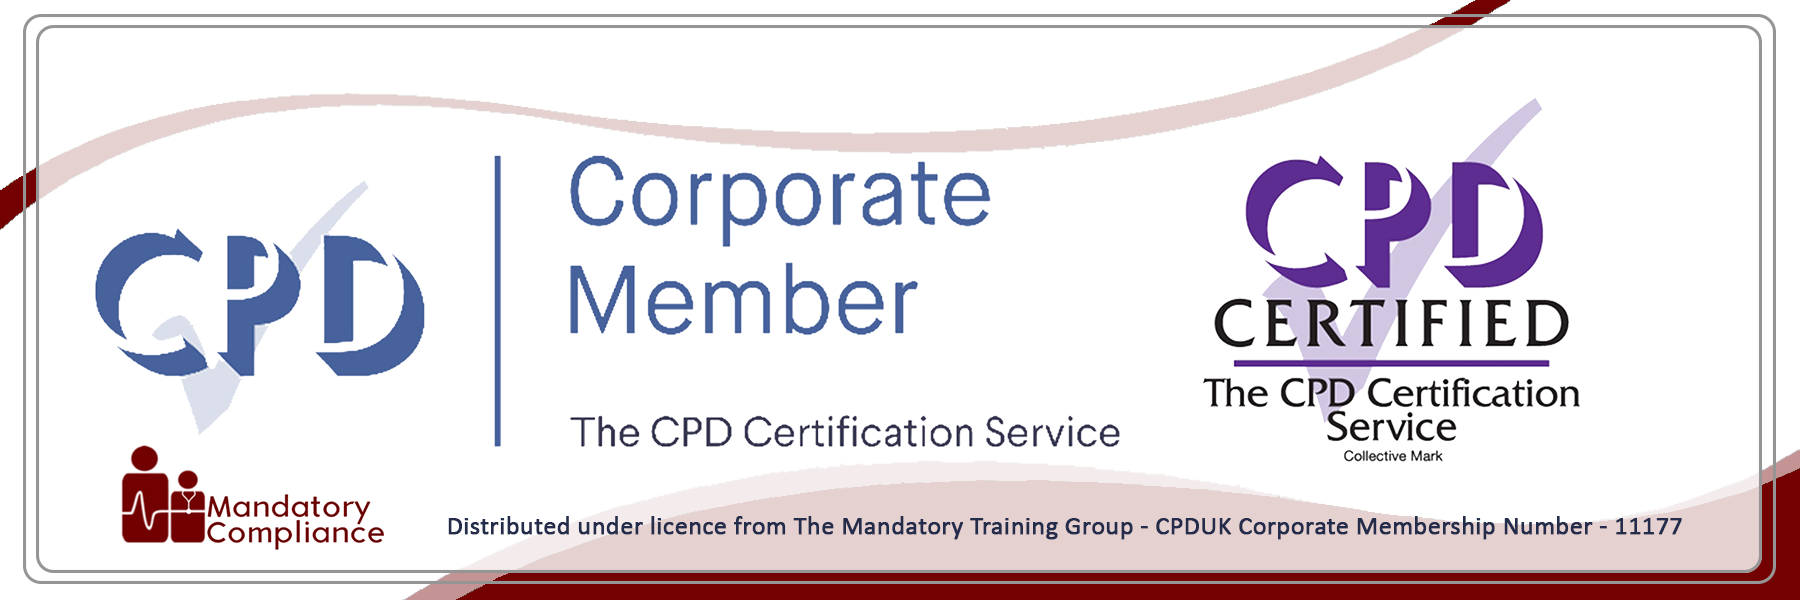 New Manager Essentials -Online Training Course - The Mandatory Training Group UK -